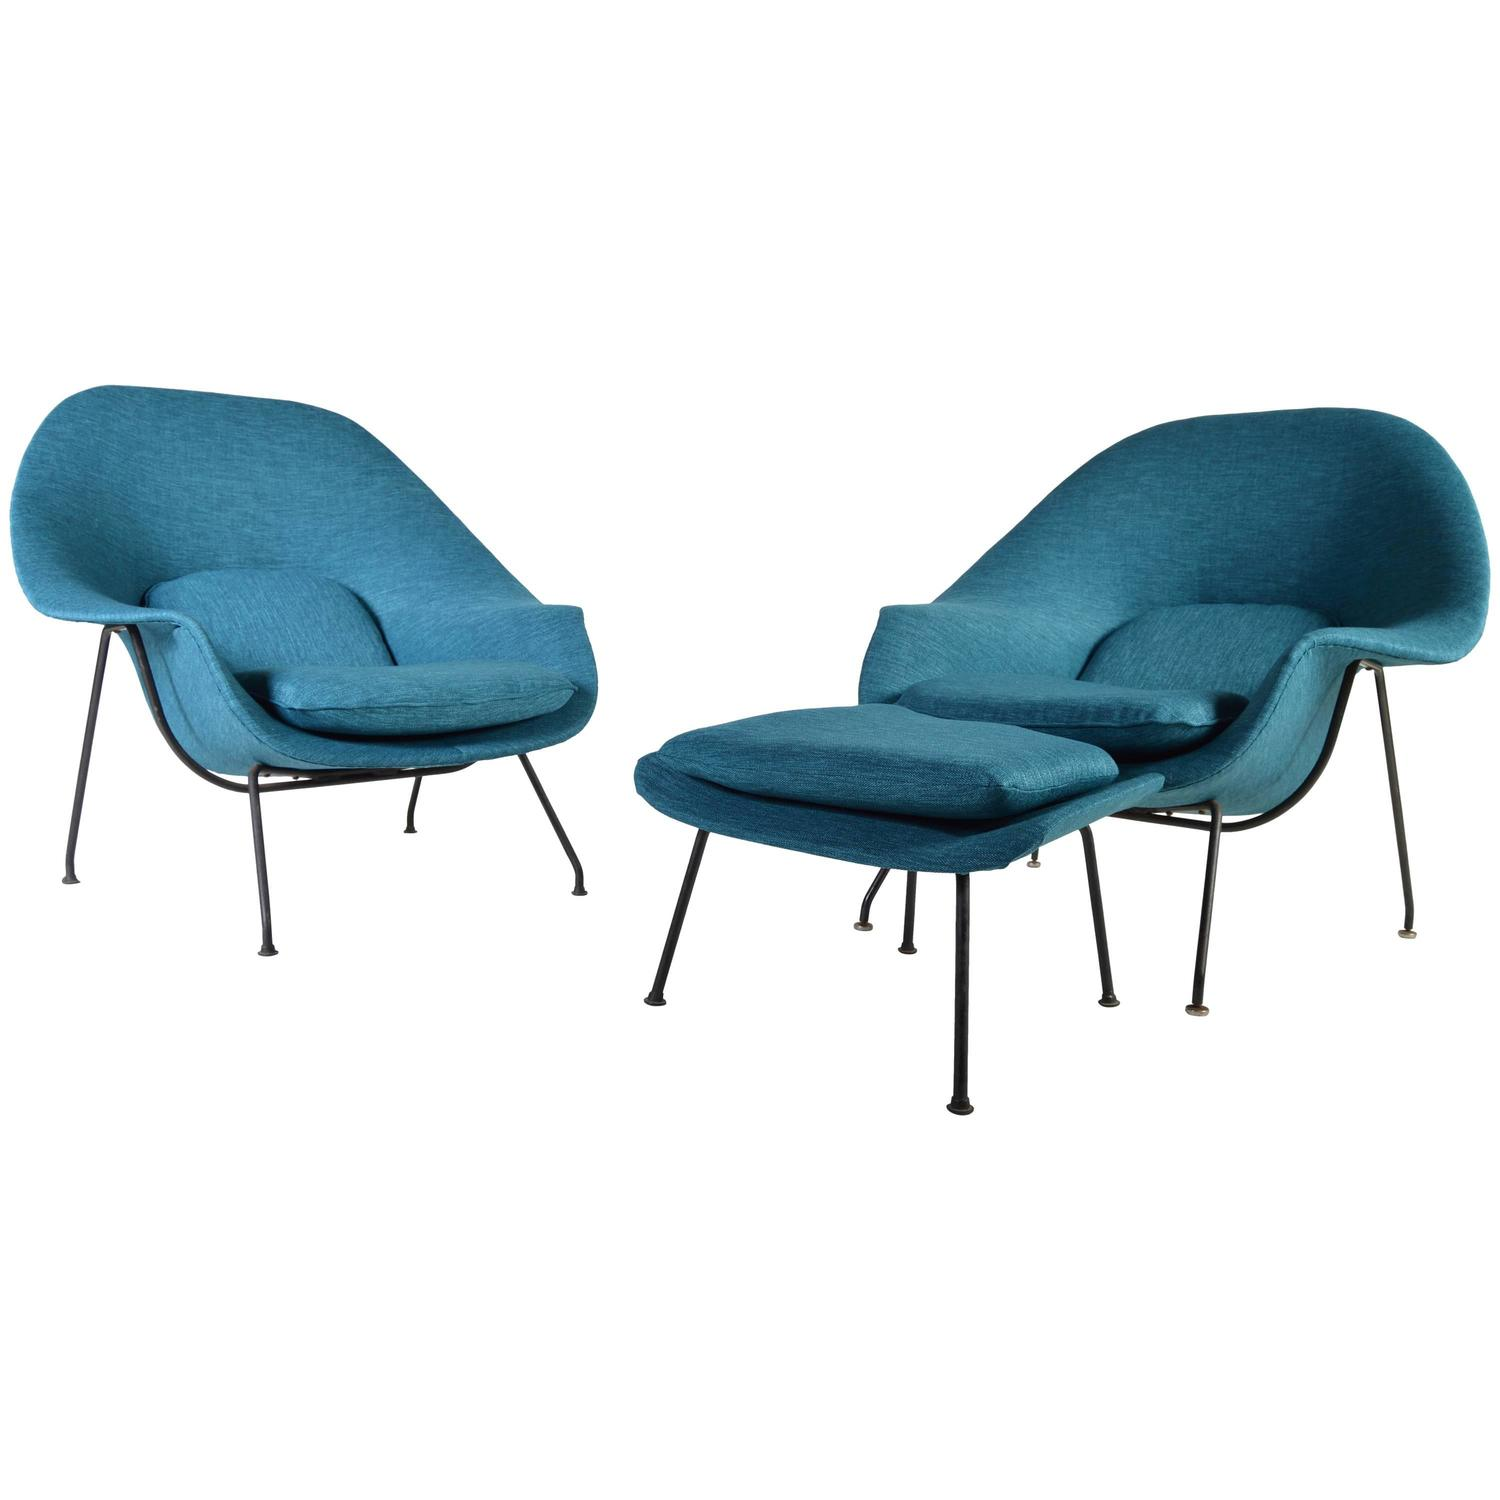 Early 1950s Pair of Eero Saarinen Womb Chairs with Ottoman for